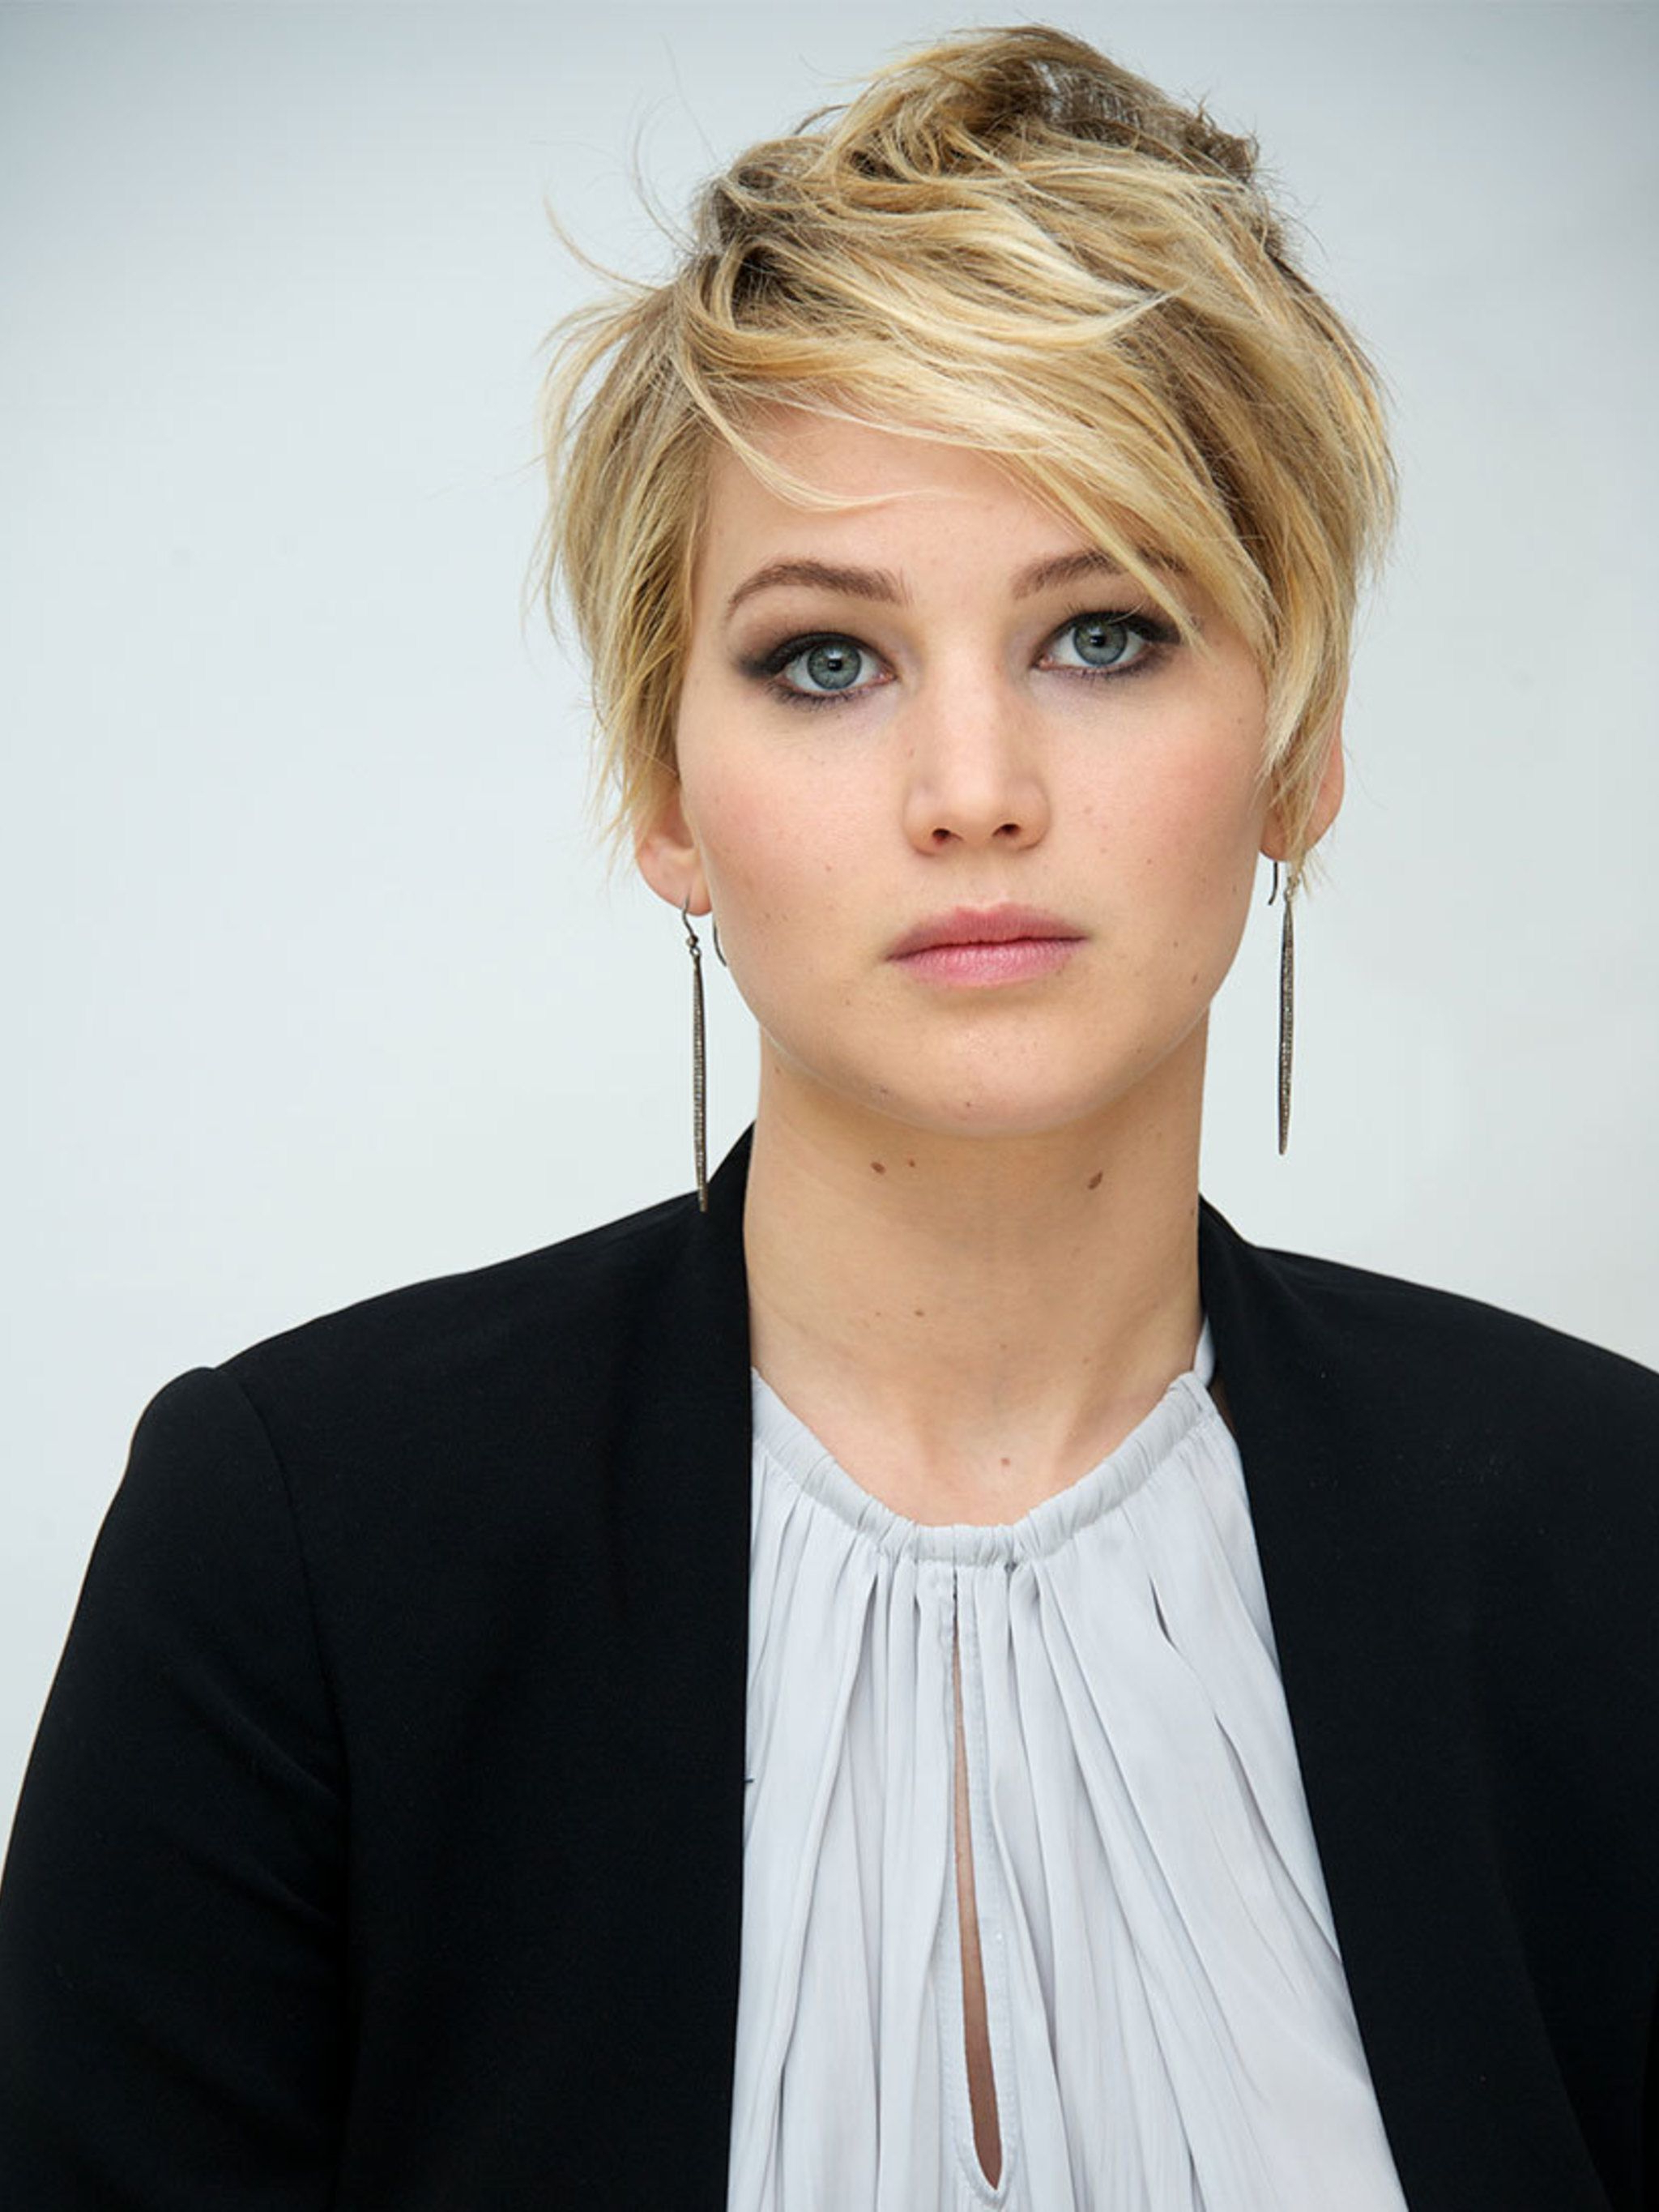 Grow Out Your Hair Like J Law Pertaining To Jennifer Lawrence Short Haircuts (View 14 of 25)